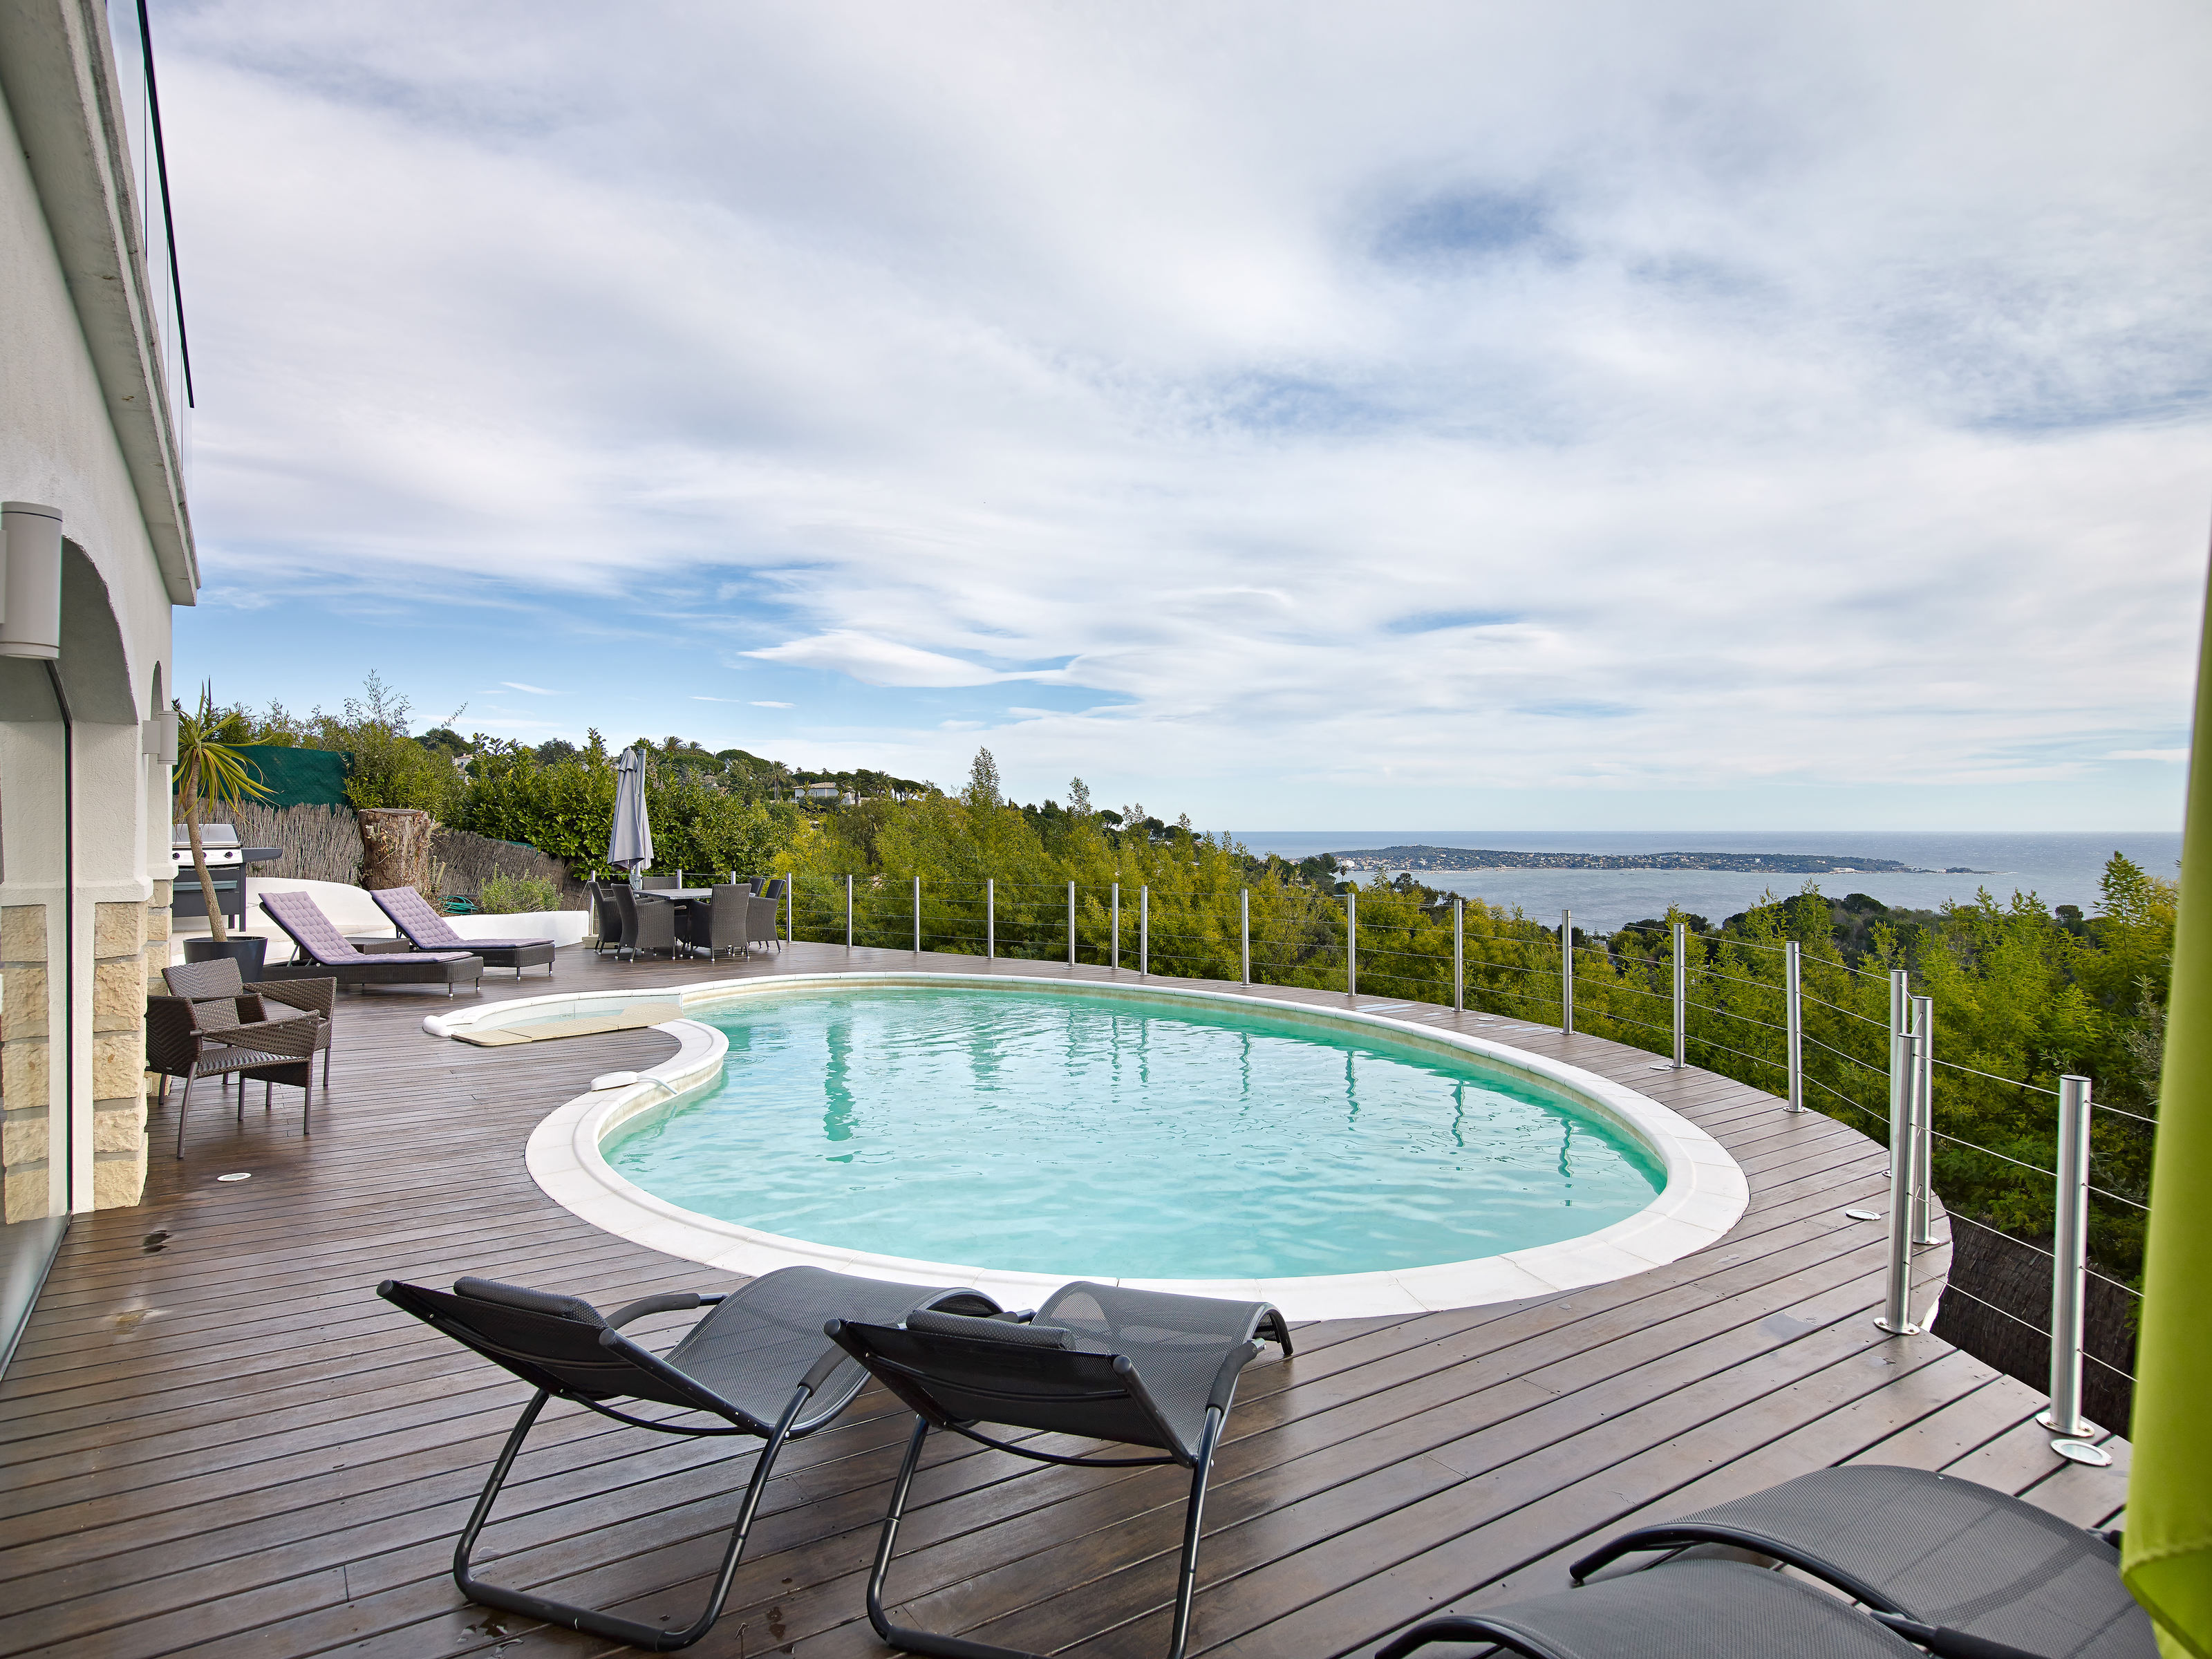 Single Family Home for Sale at PANORAMIC SEA VIEW - JOINT AGENT Cannes, Provence-Alpes-Cote D'Azur 06400 France